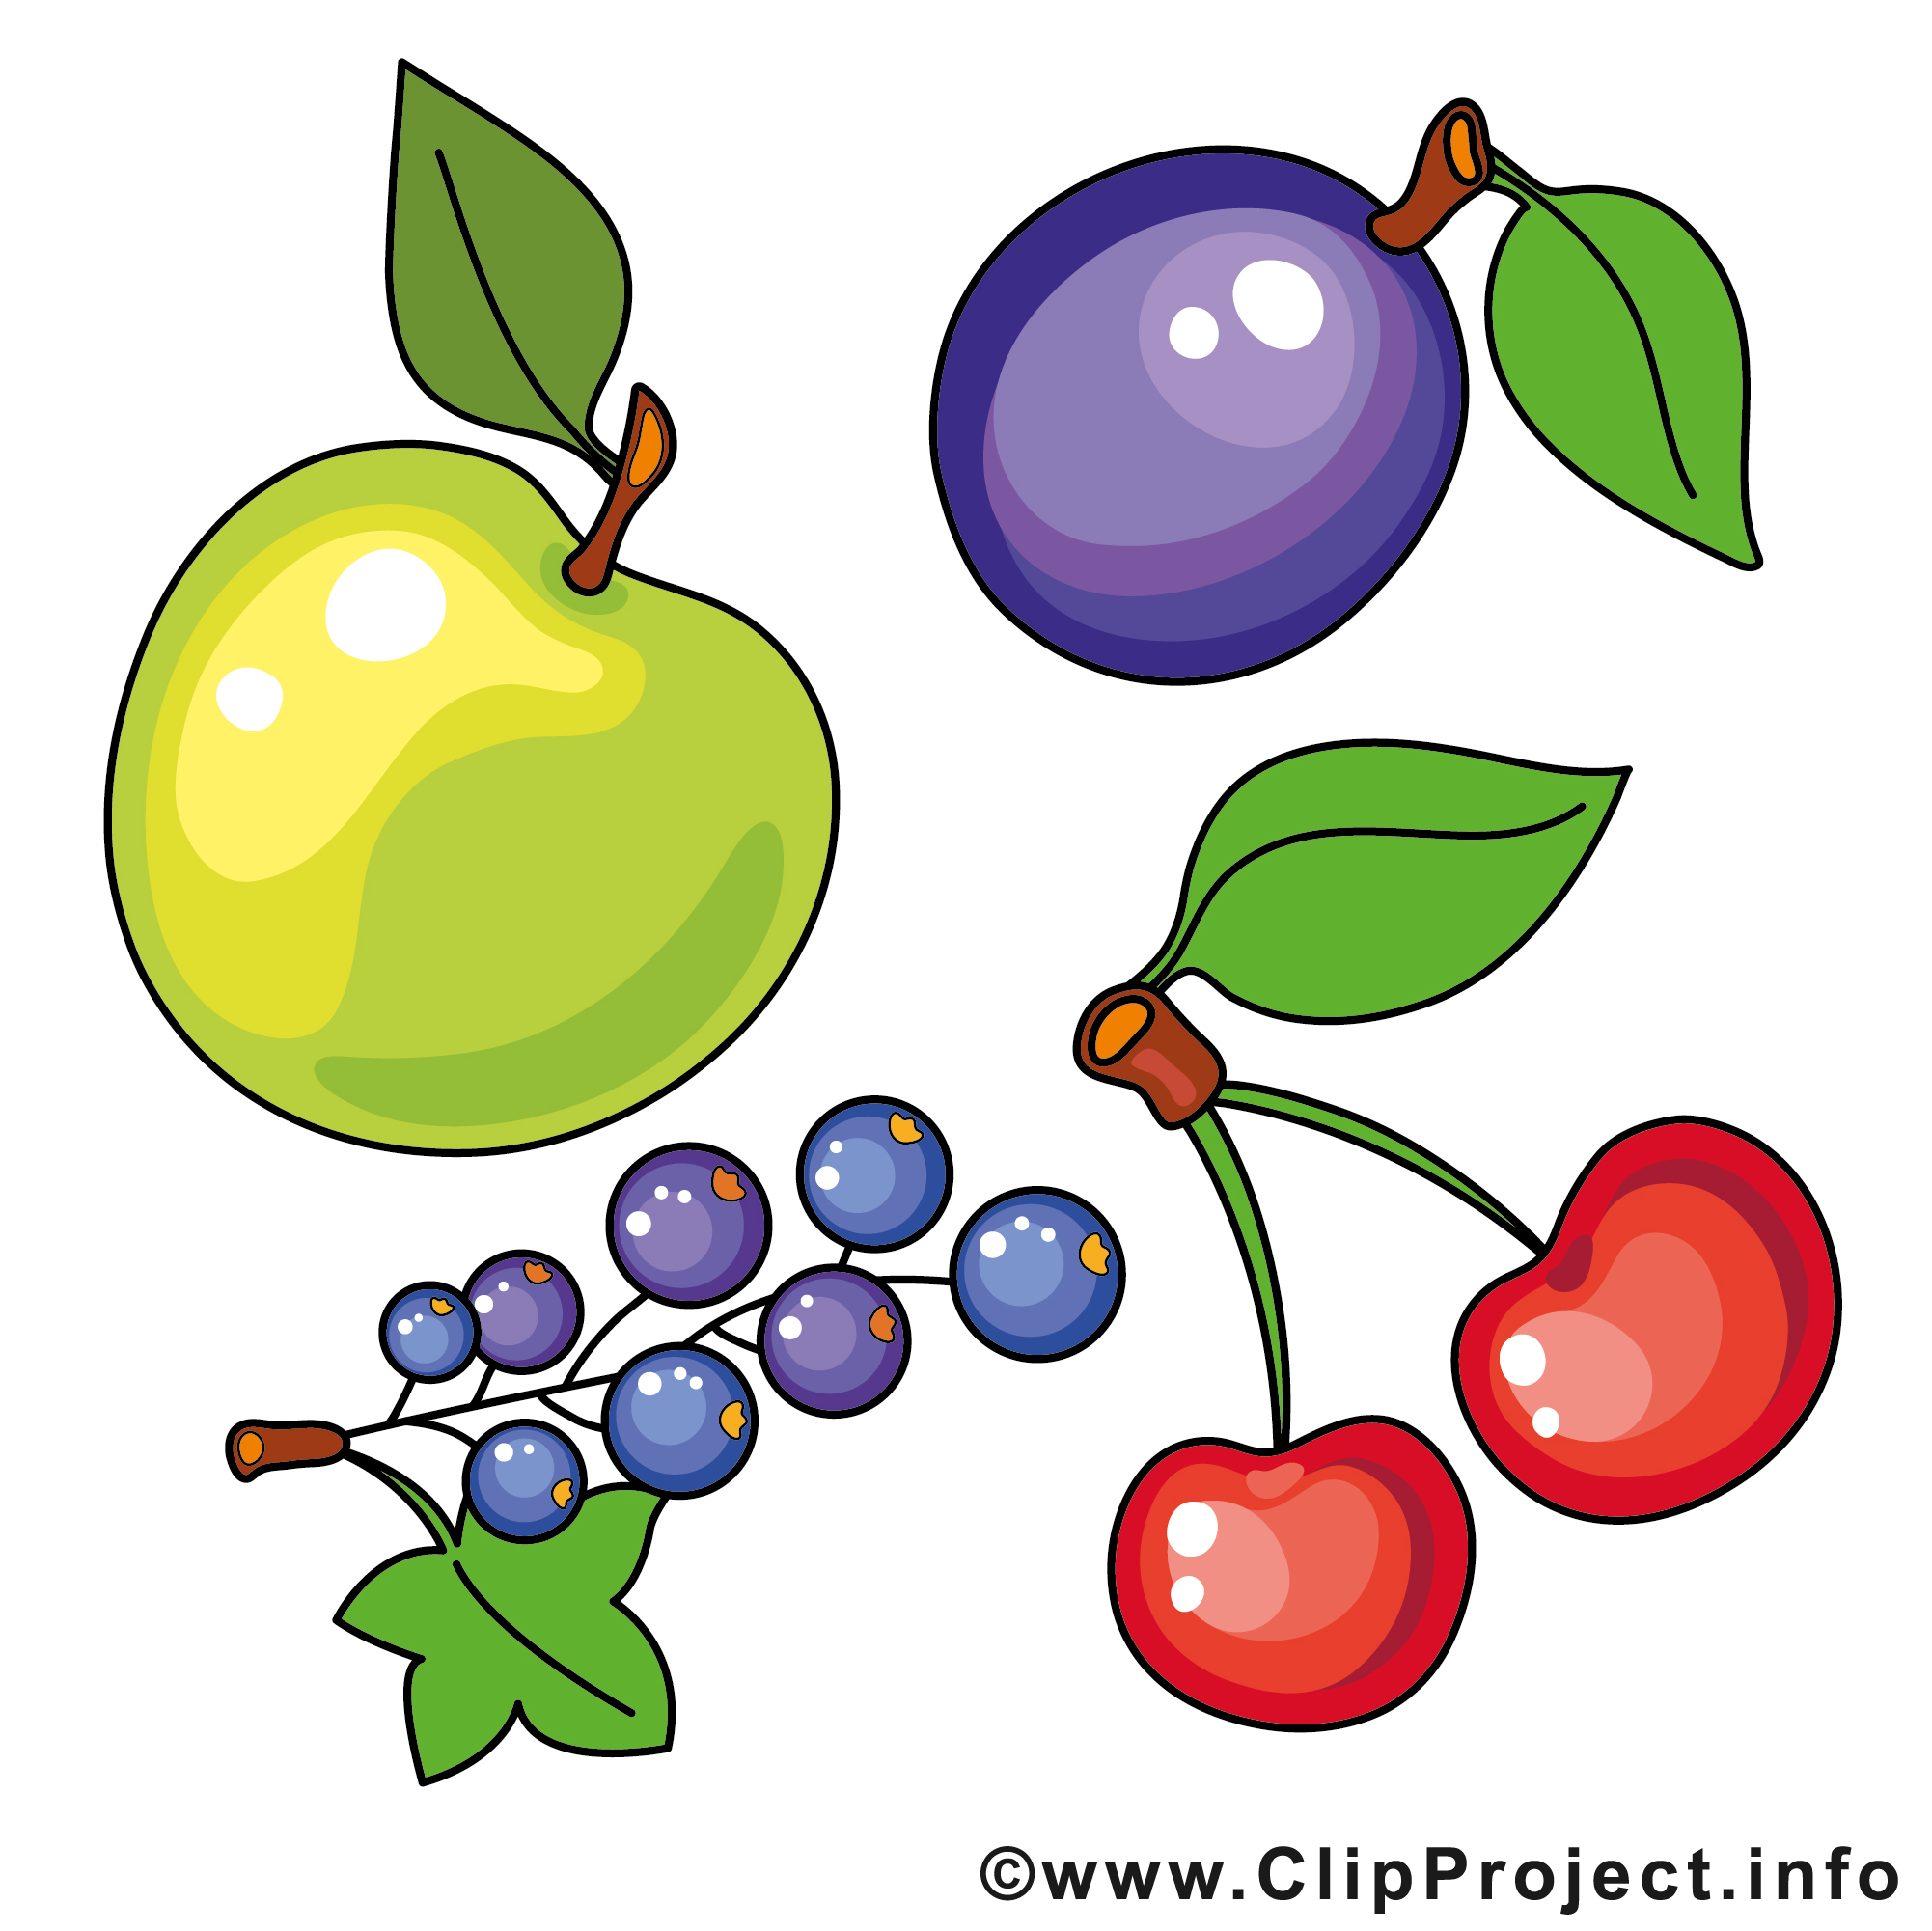 Obst und gemse clipart clipart royalty free library Cliparts obst - ClipartFox clipart royalty free library